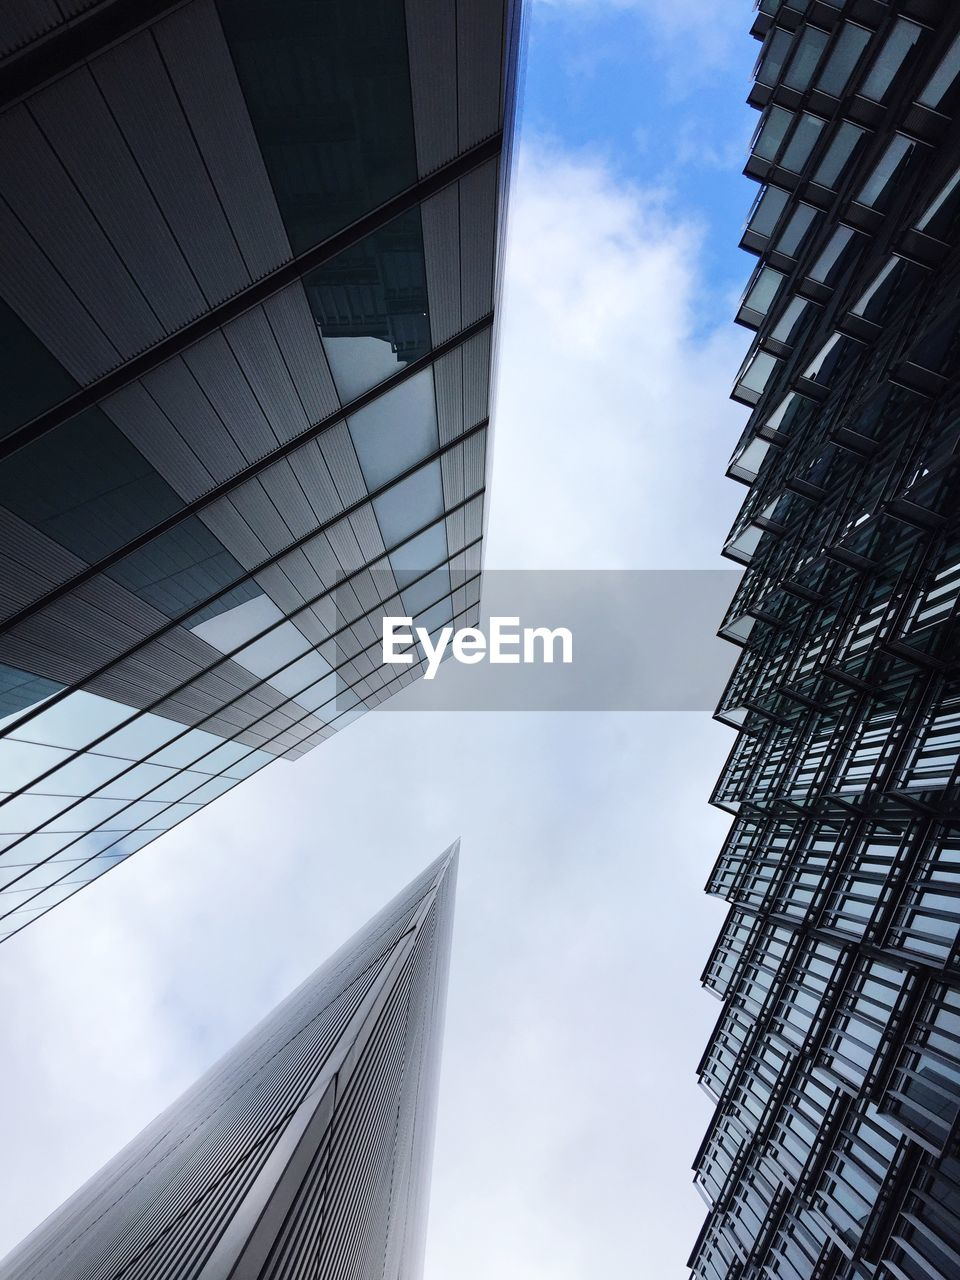 architecture, building exterior, built structure, low angle view, city, building, sky, modern, office building exterior, office, cloud - sky, tall - high, glass - material, skyscraper, no people, day, tower, nature, reflection, outdoors, directly below, glass, financial district